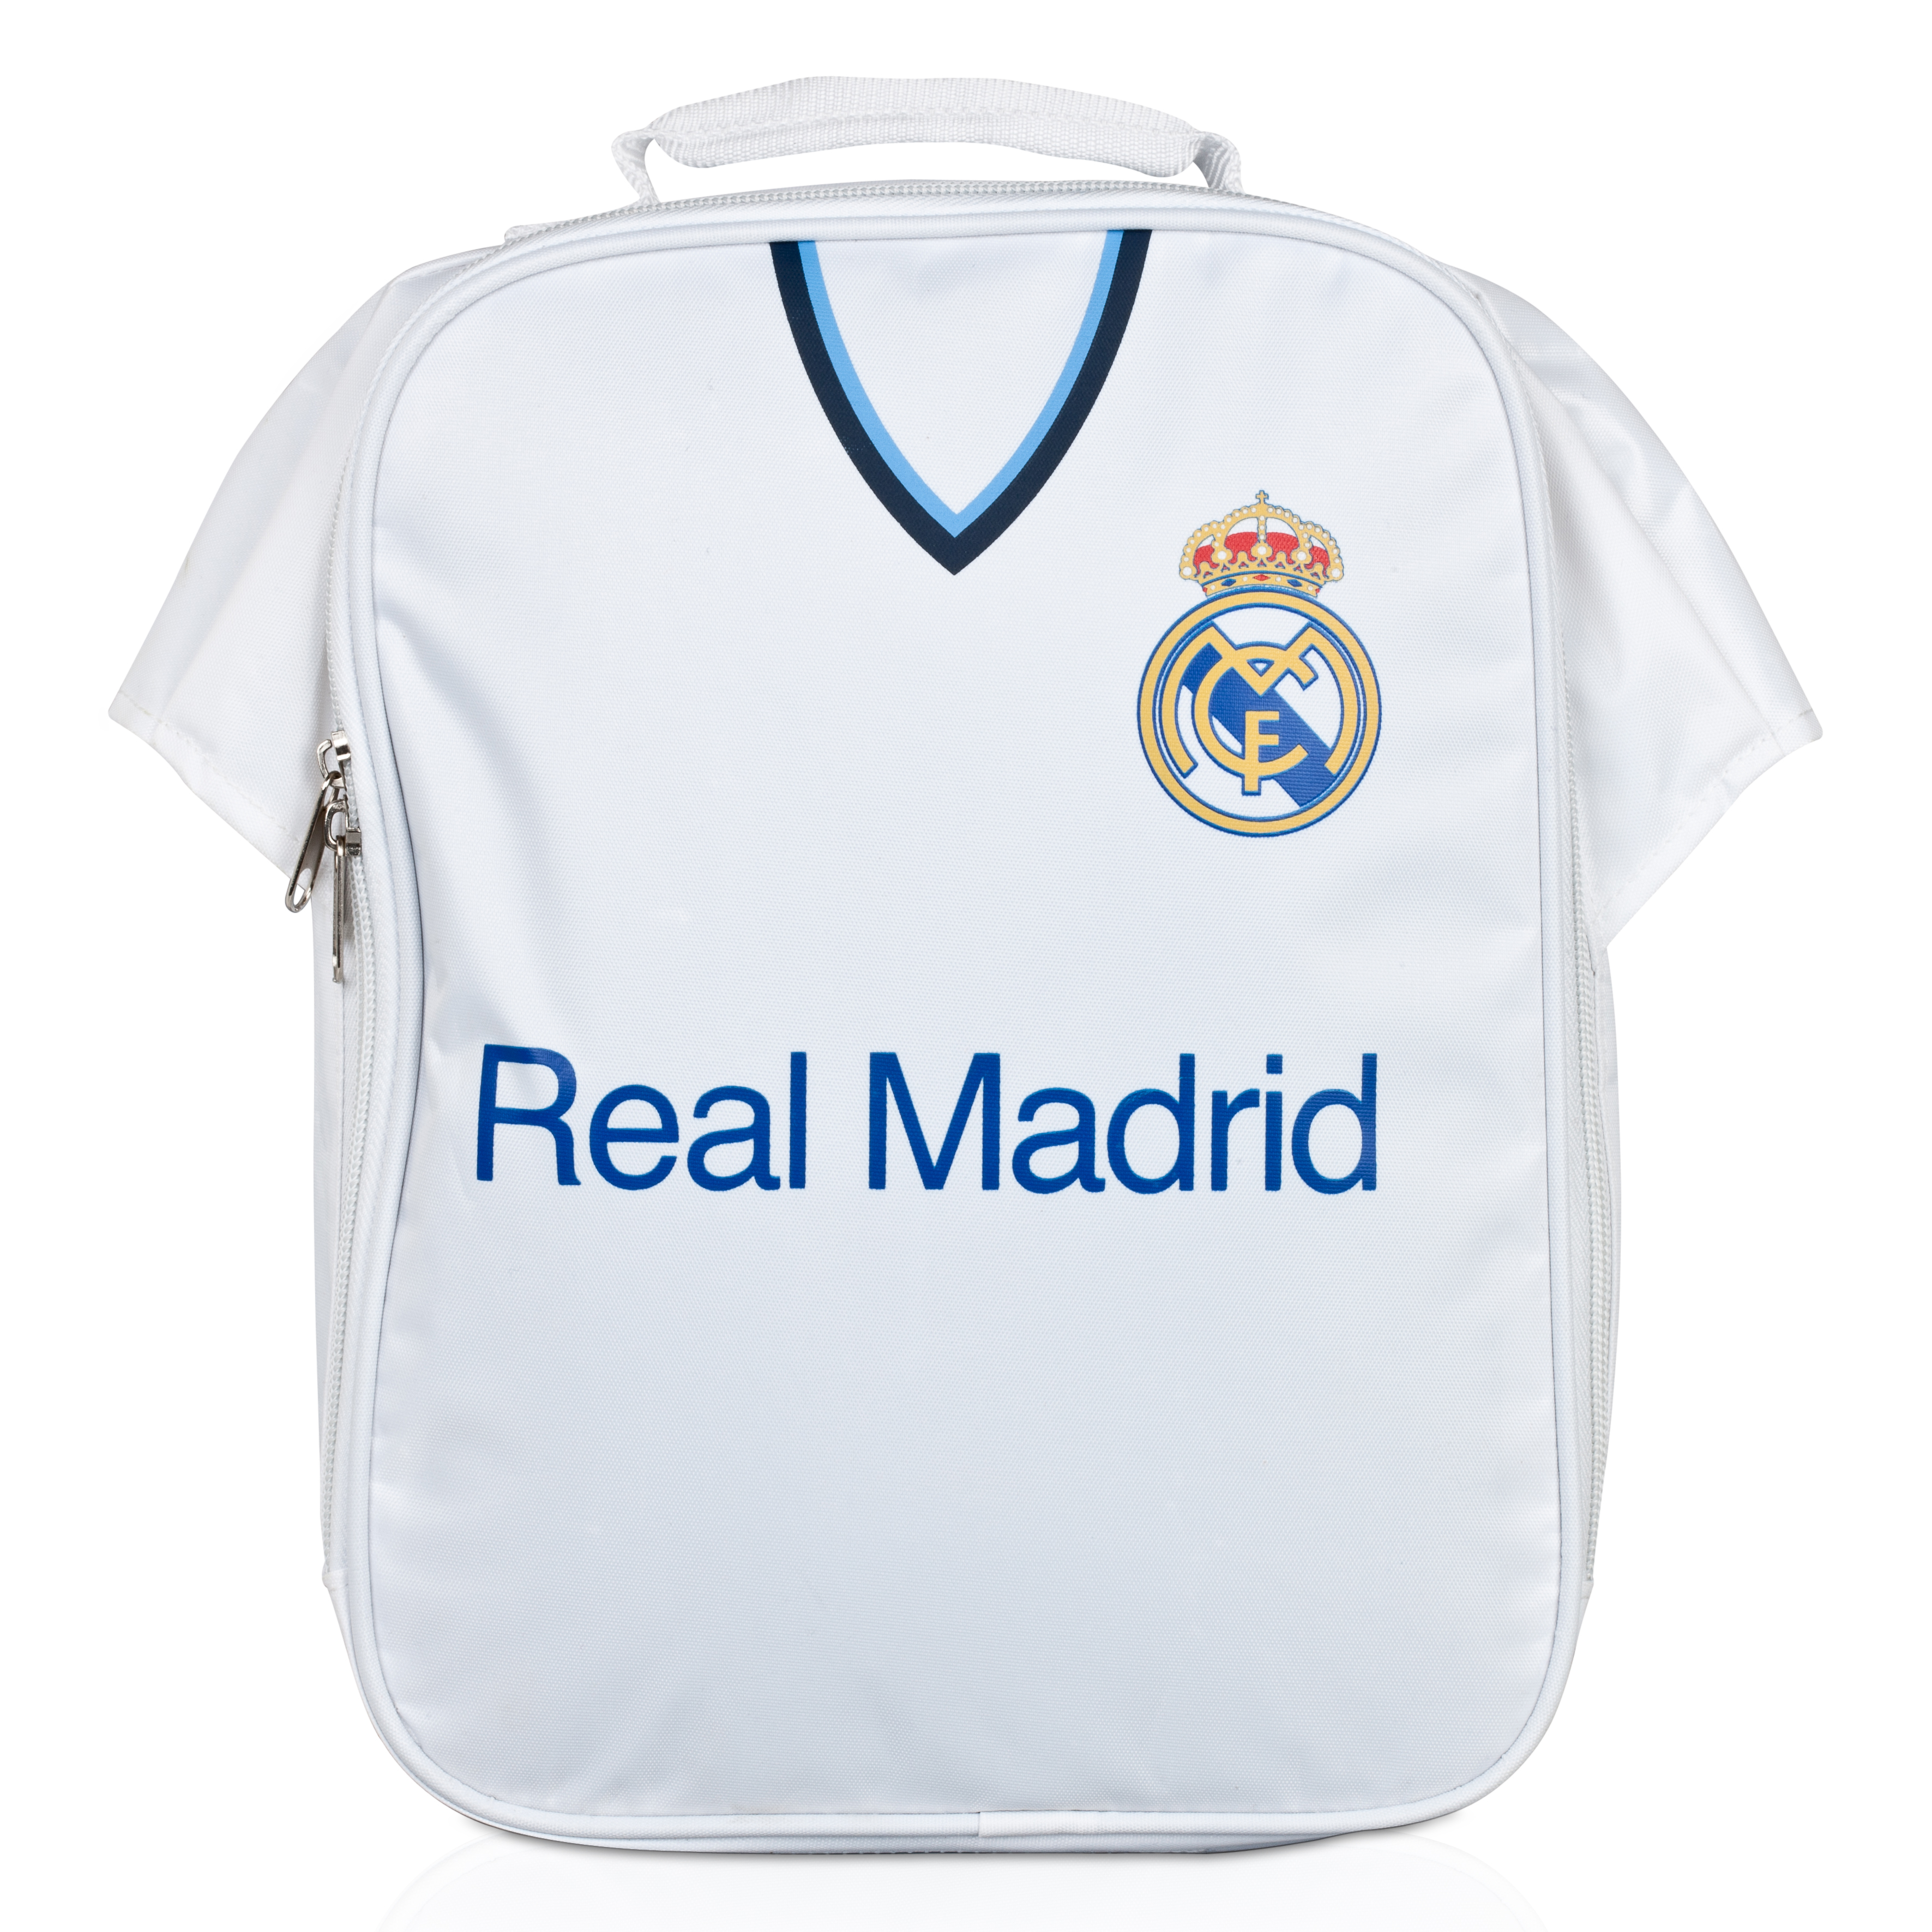 Bolsa fiambrera con forma de camiseta Real Madrid